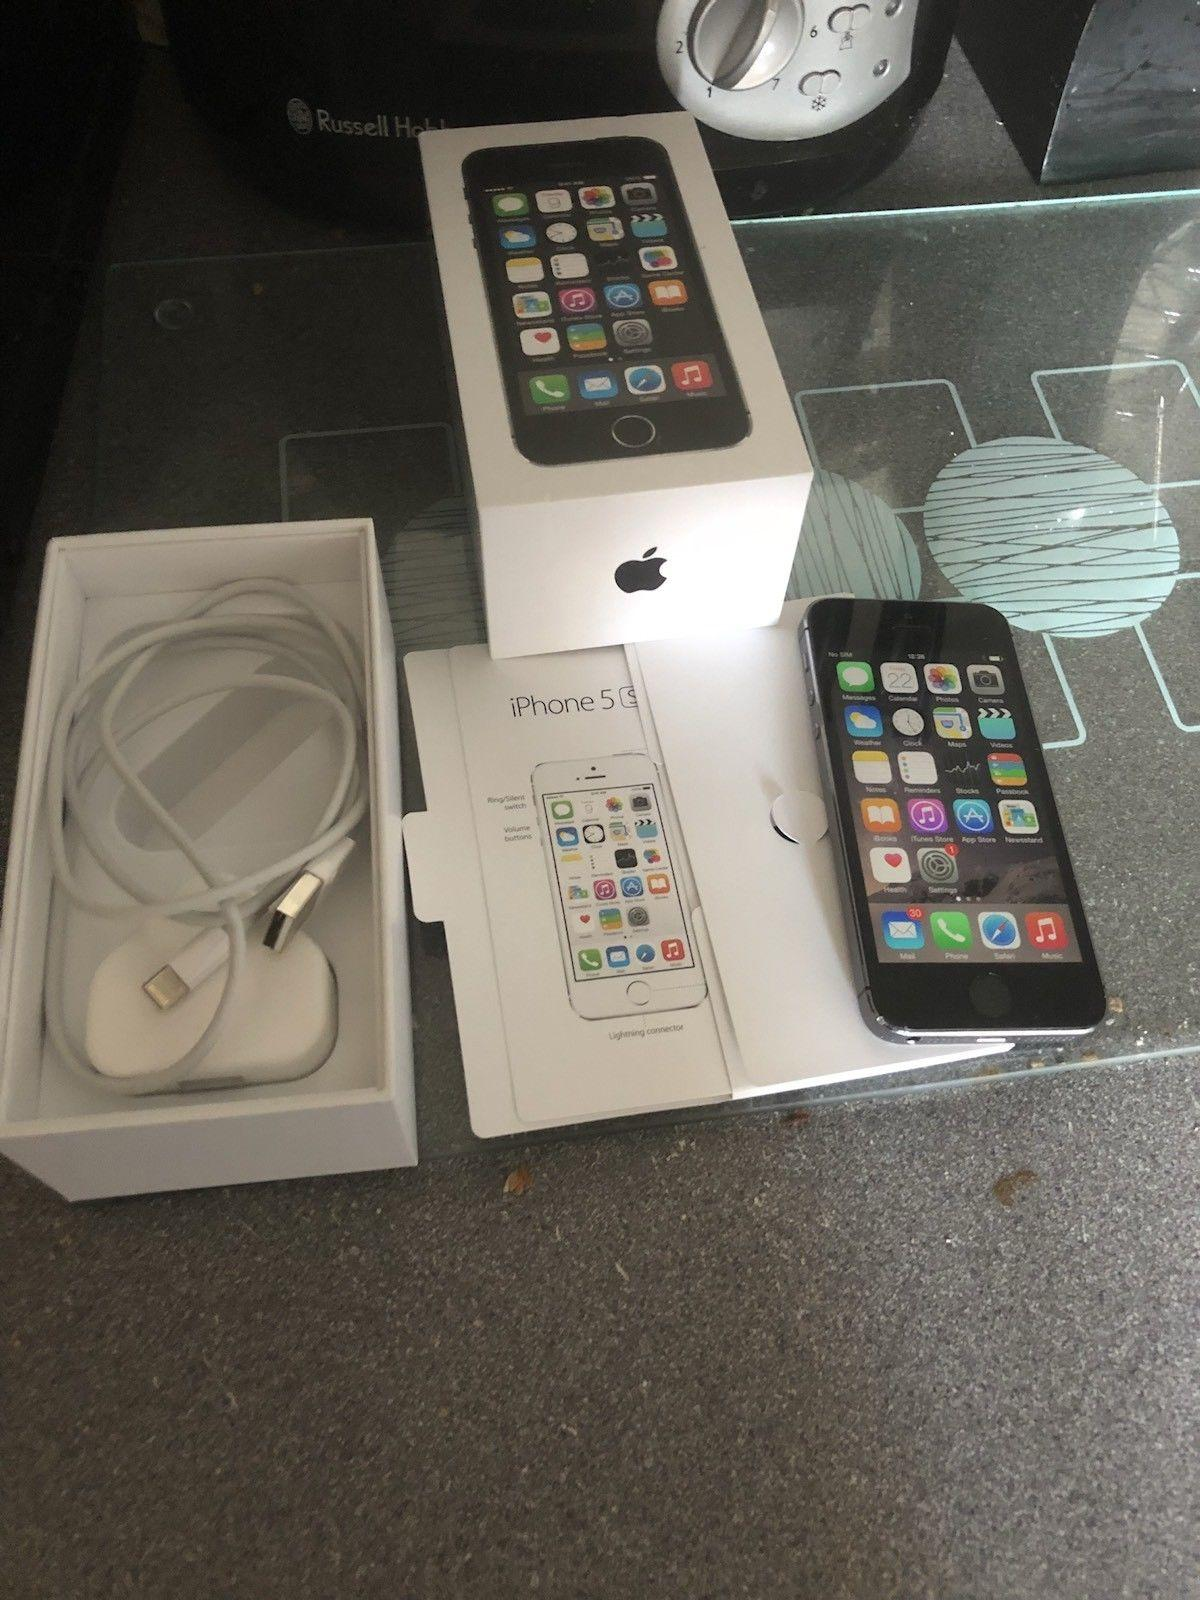 Apple Iphone 5s 32gb Ori Fullset Nego 32 Gb 1 Years Waranty Package Content X Ac Wall Charger Usb Data Sync Cable Earphones Card Pin User Manual Box Ws Pm Only